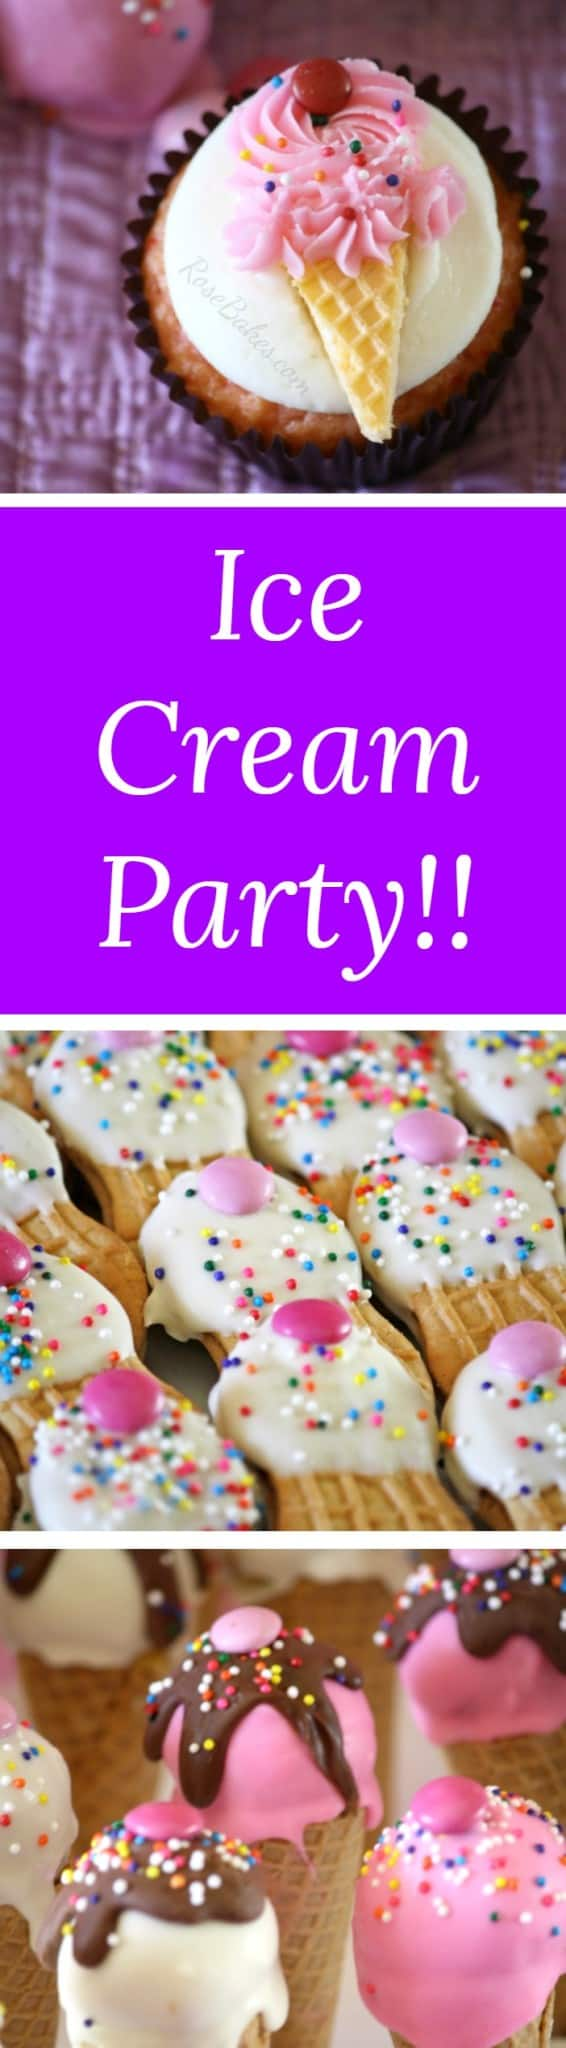 Ice Cream Party Treats | RoseBakes.com